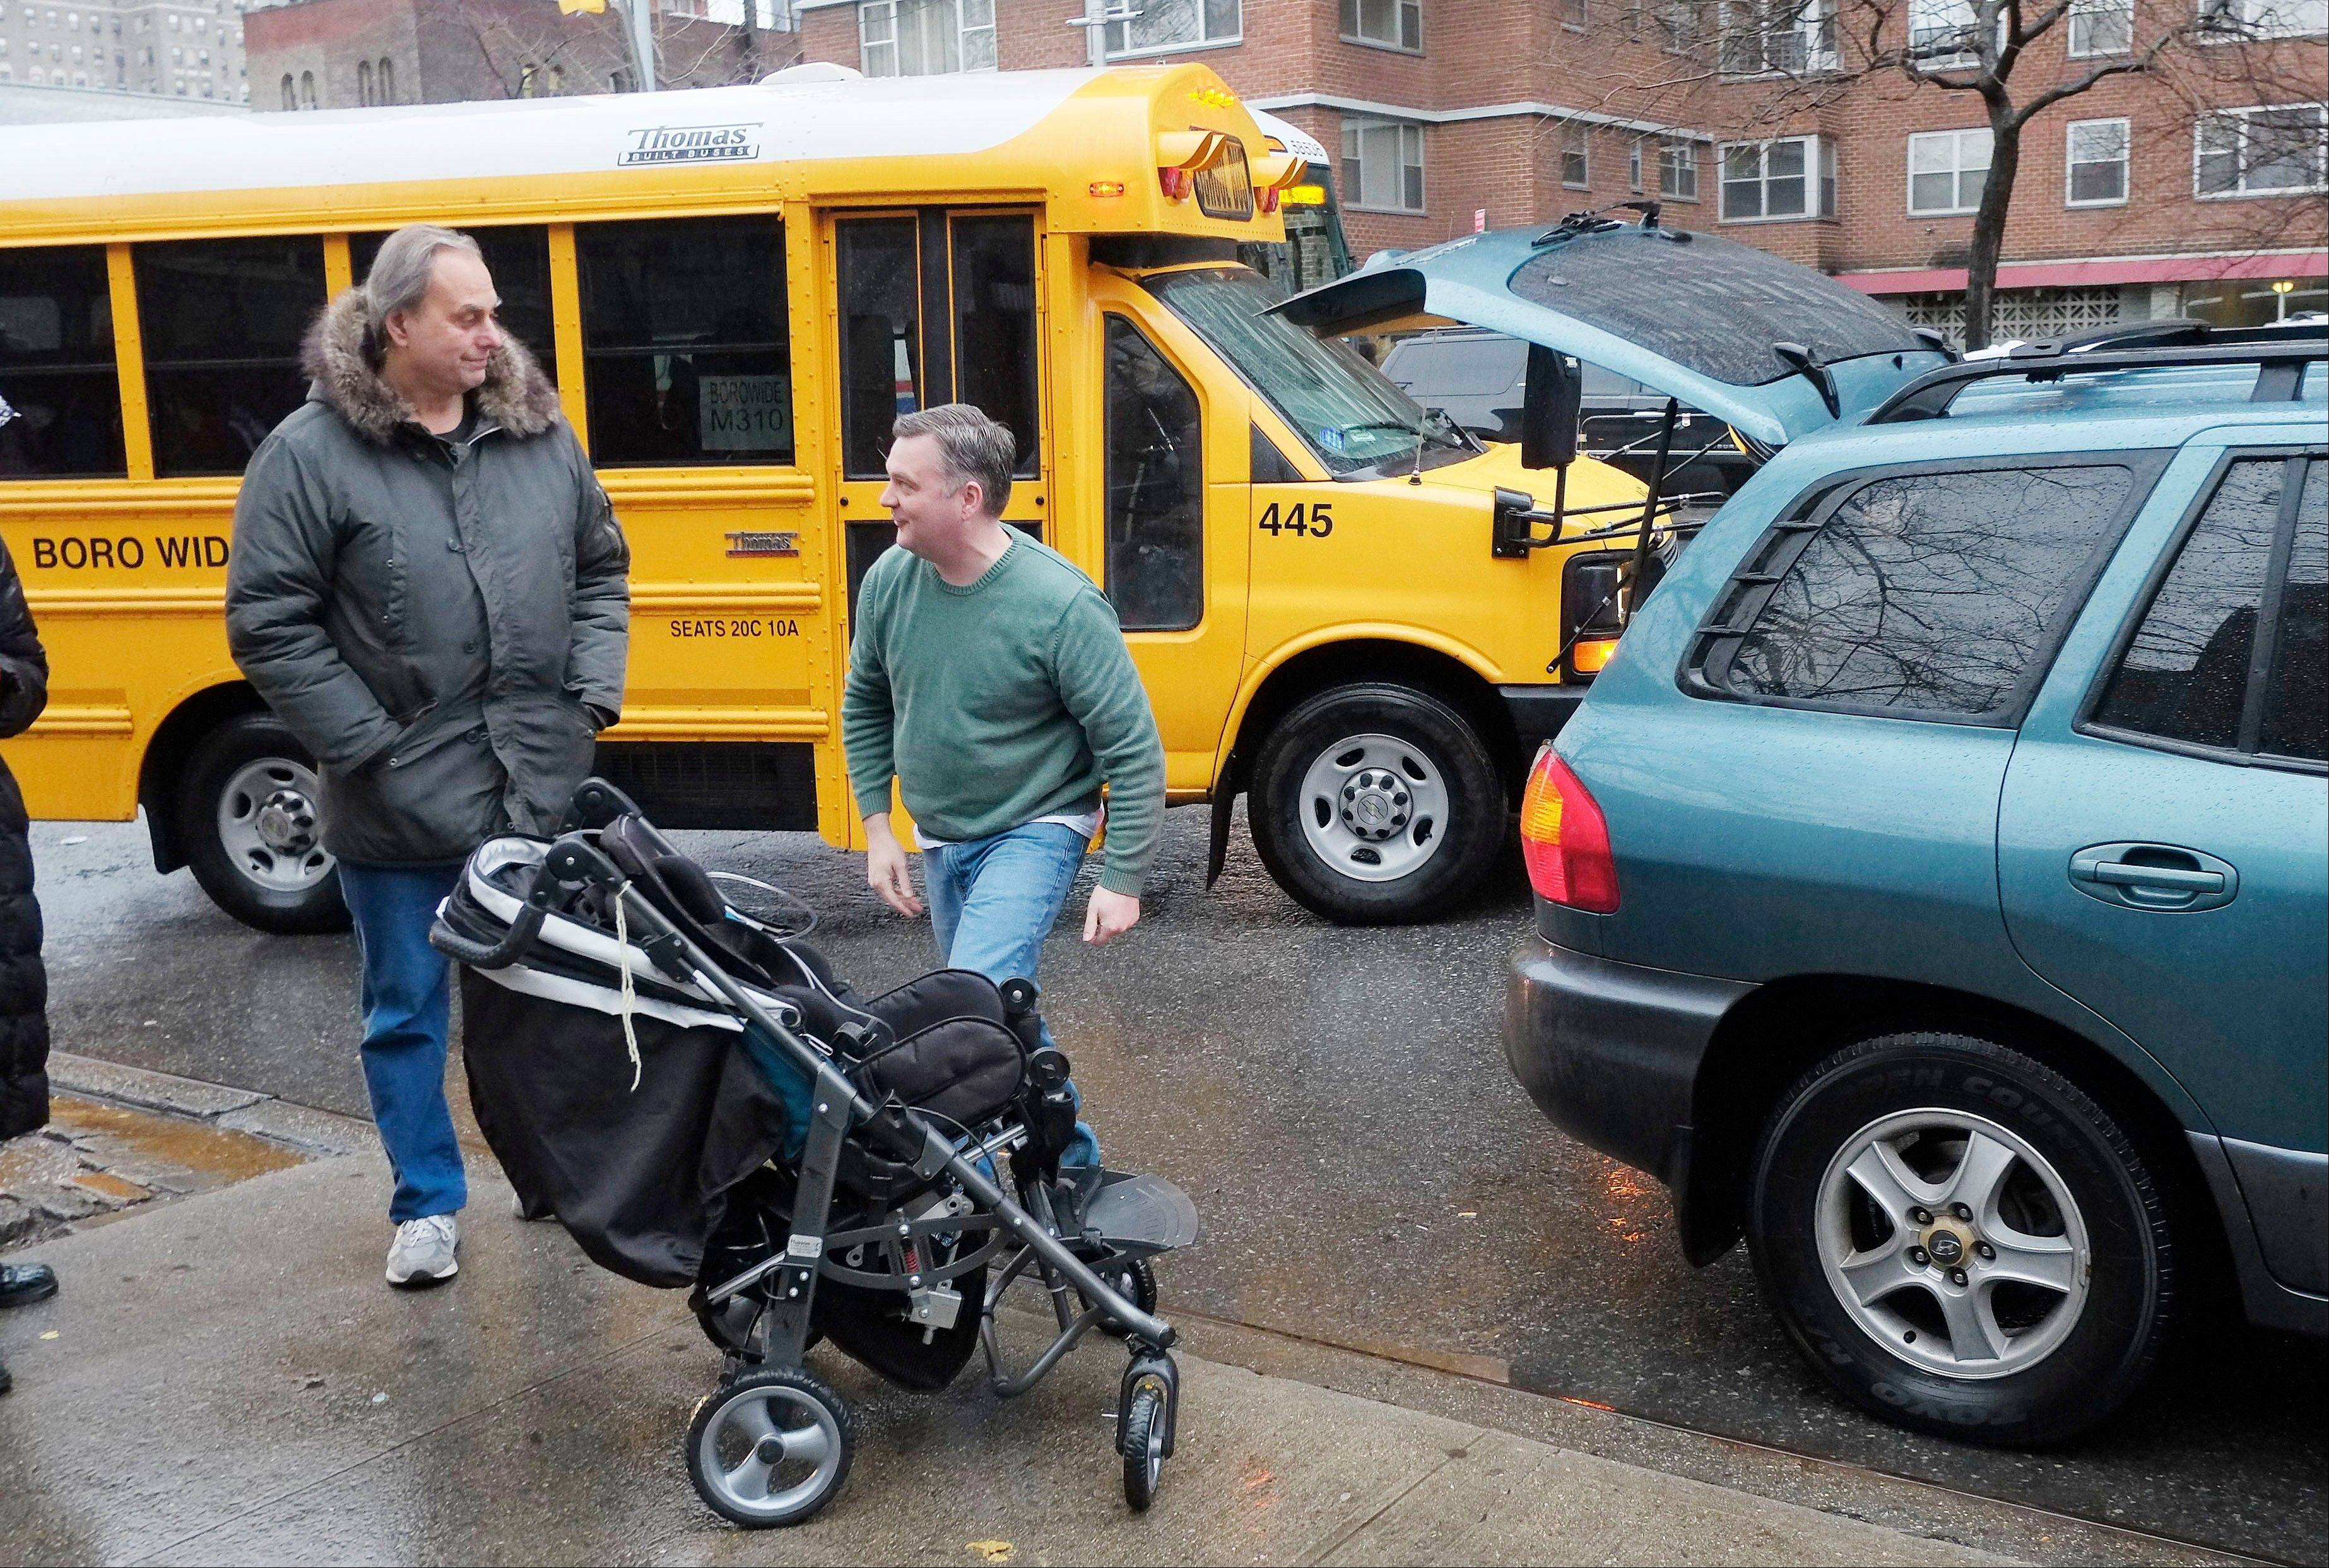 Peter Curry, center, unloads his daughter's wheelchair from his car after driving her to Public School 33, Wednesday, Jan. 16, 2013 in New York. She would normally be driven by school bus, according to her father.